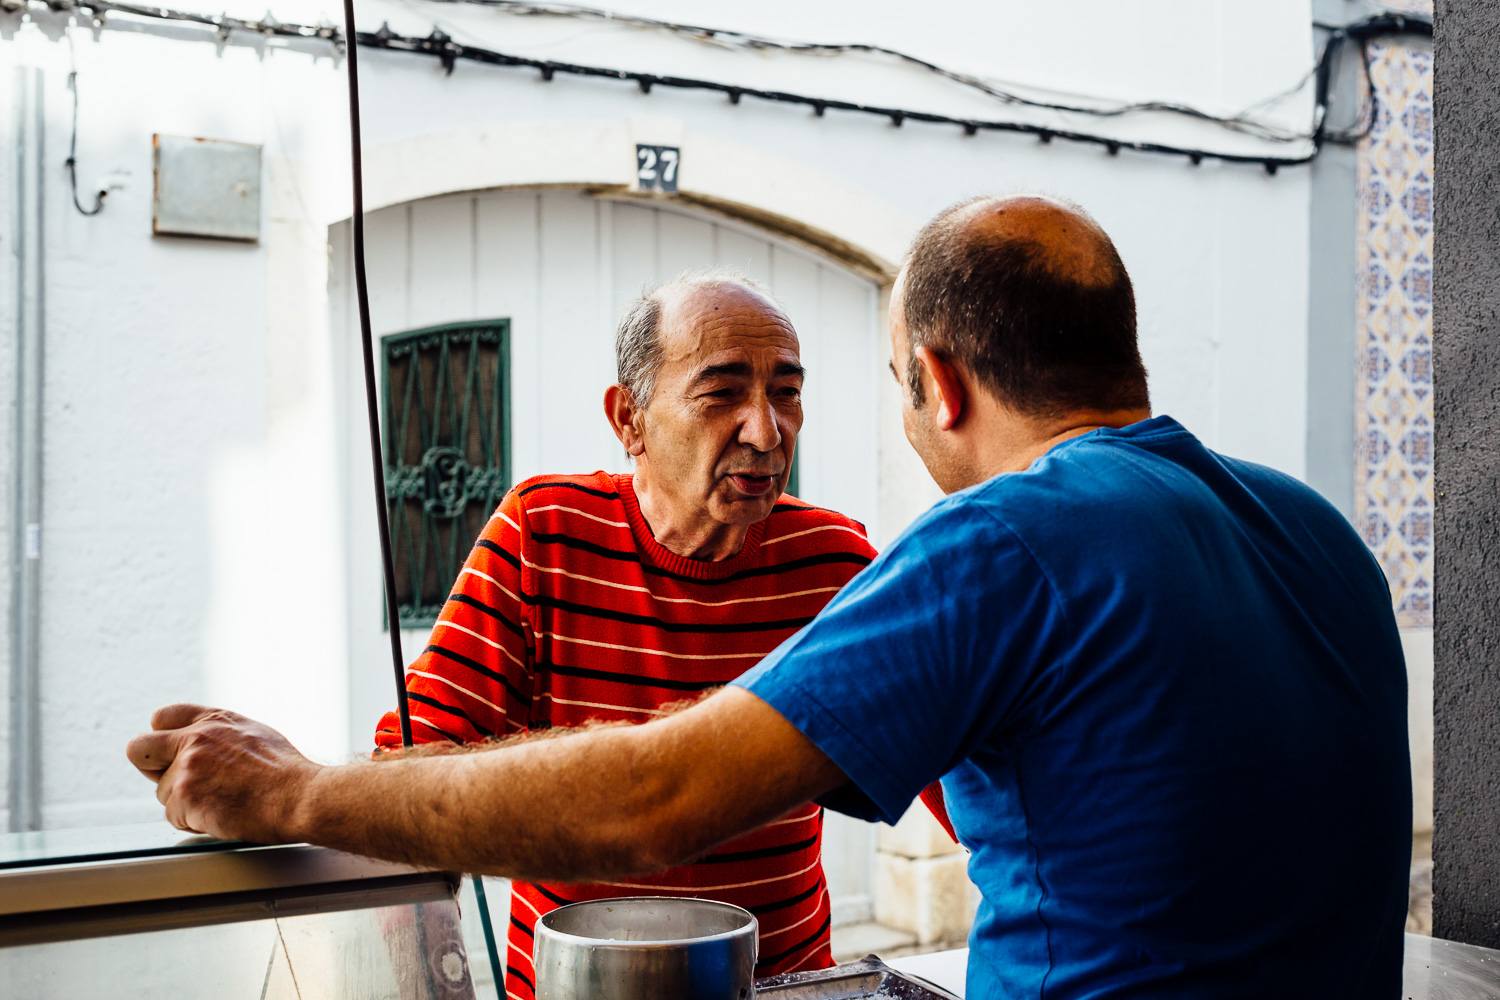 Cooking-Fish-Artesanal-Couisine-People-Street-Portugal-Travel-Photography